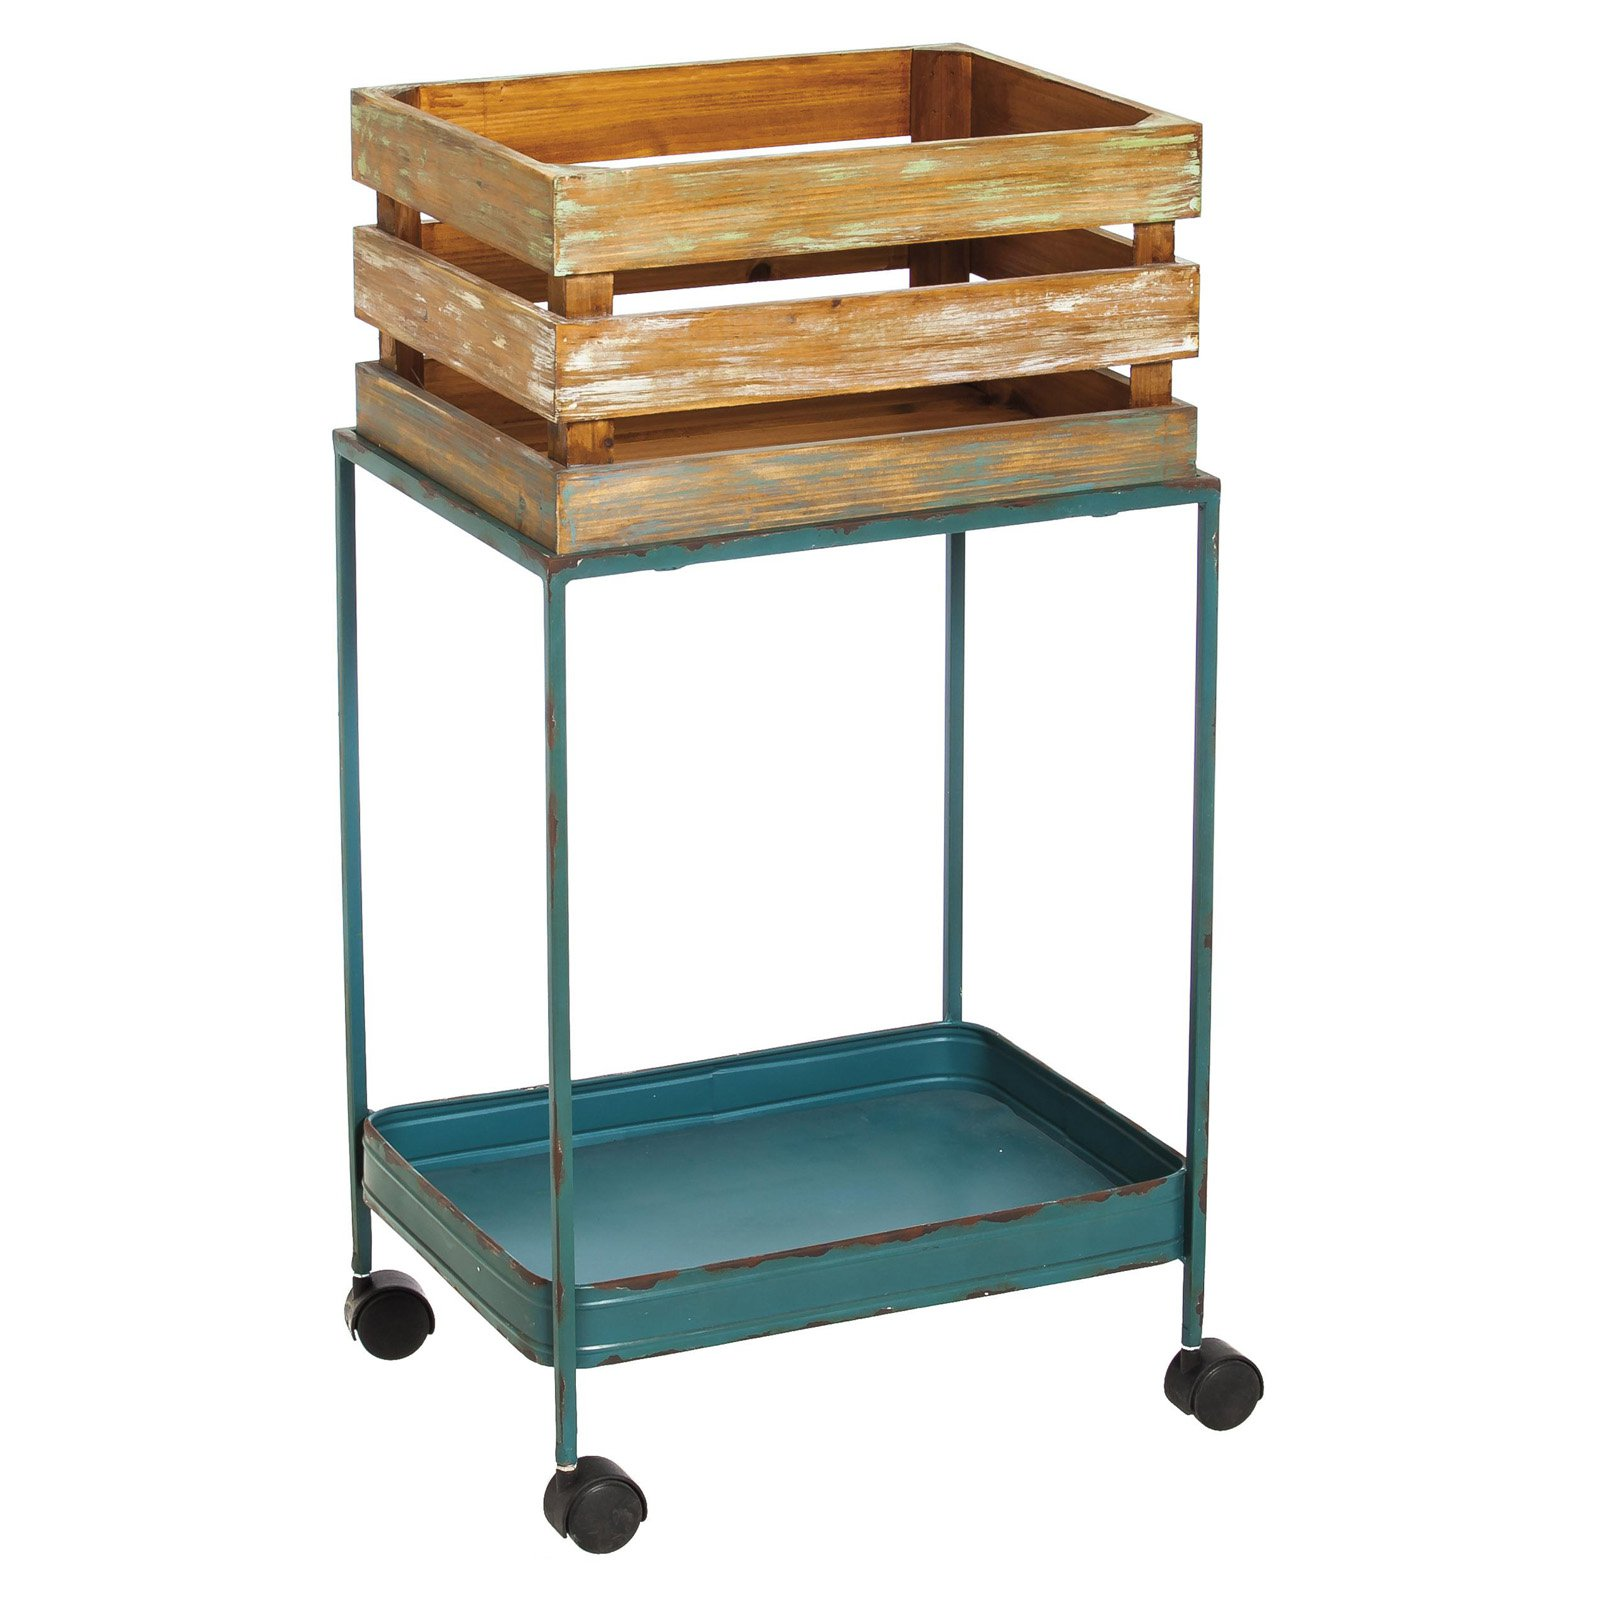 Evergreen Enterprises Distressed Wooden Crate on Blue Metal Cart on Wheels